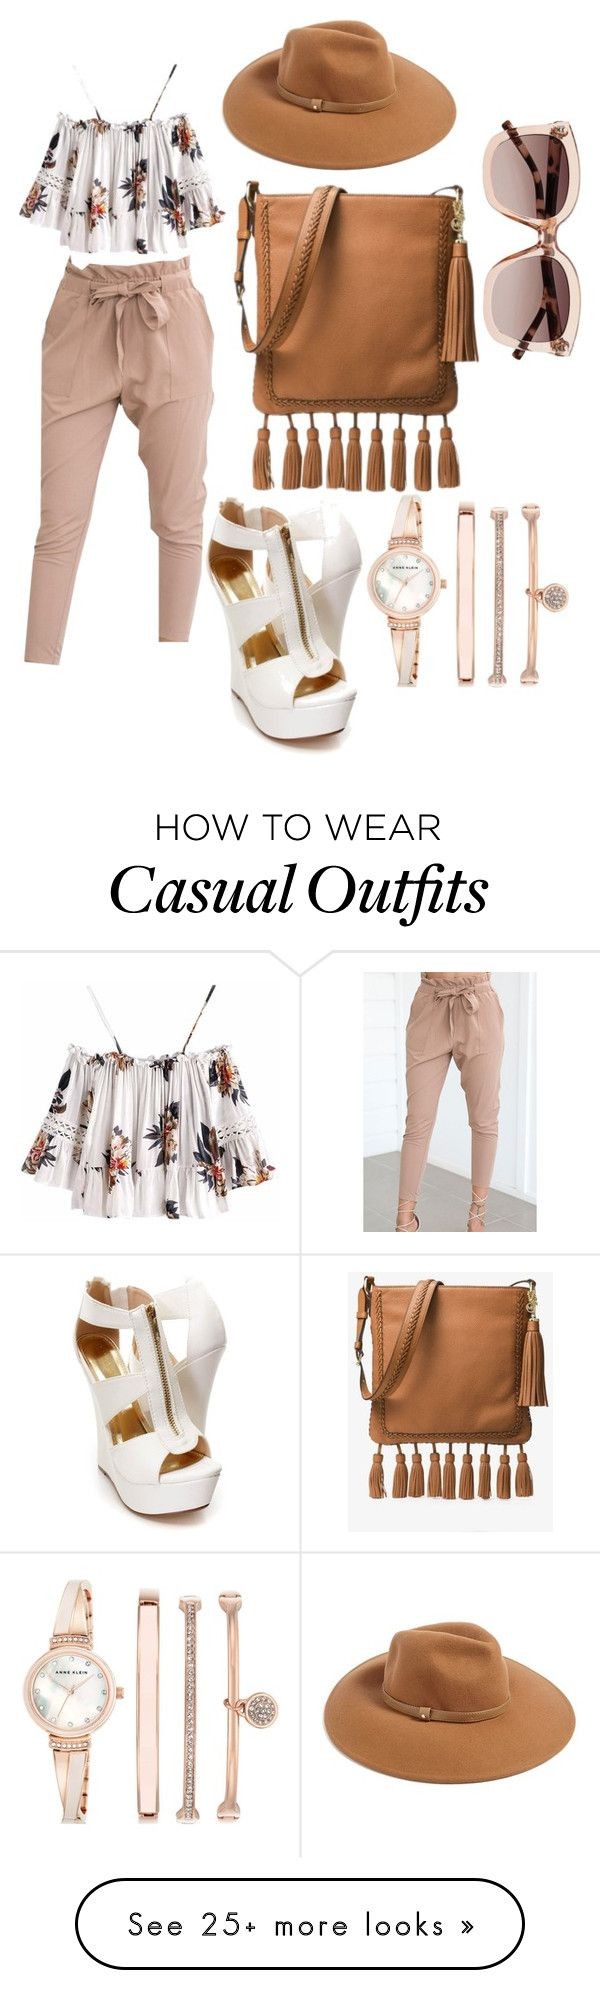 """Untitled #574"" by tessa-creations on Polyvore featuring WithChic, MICHAEL Michael Kors, Forever 21, Witchery and Anne Klein"